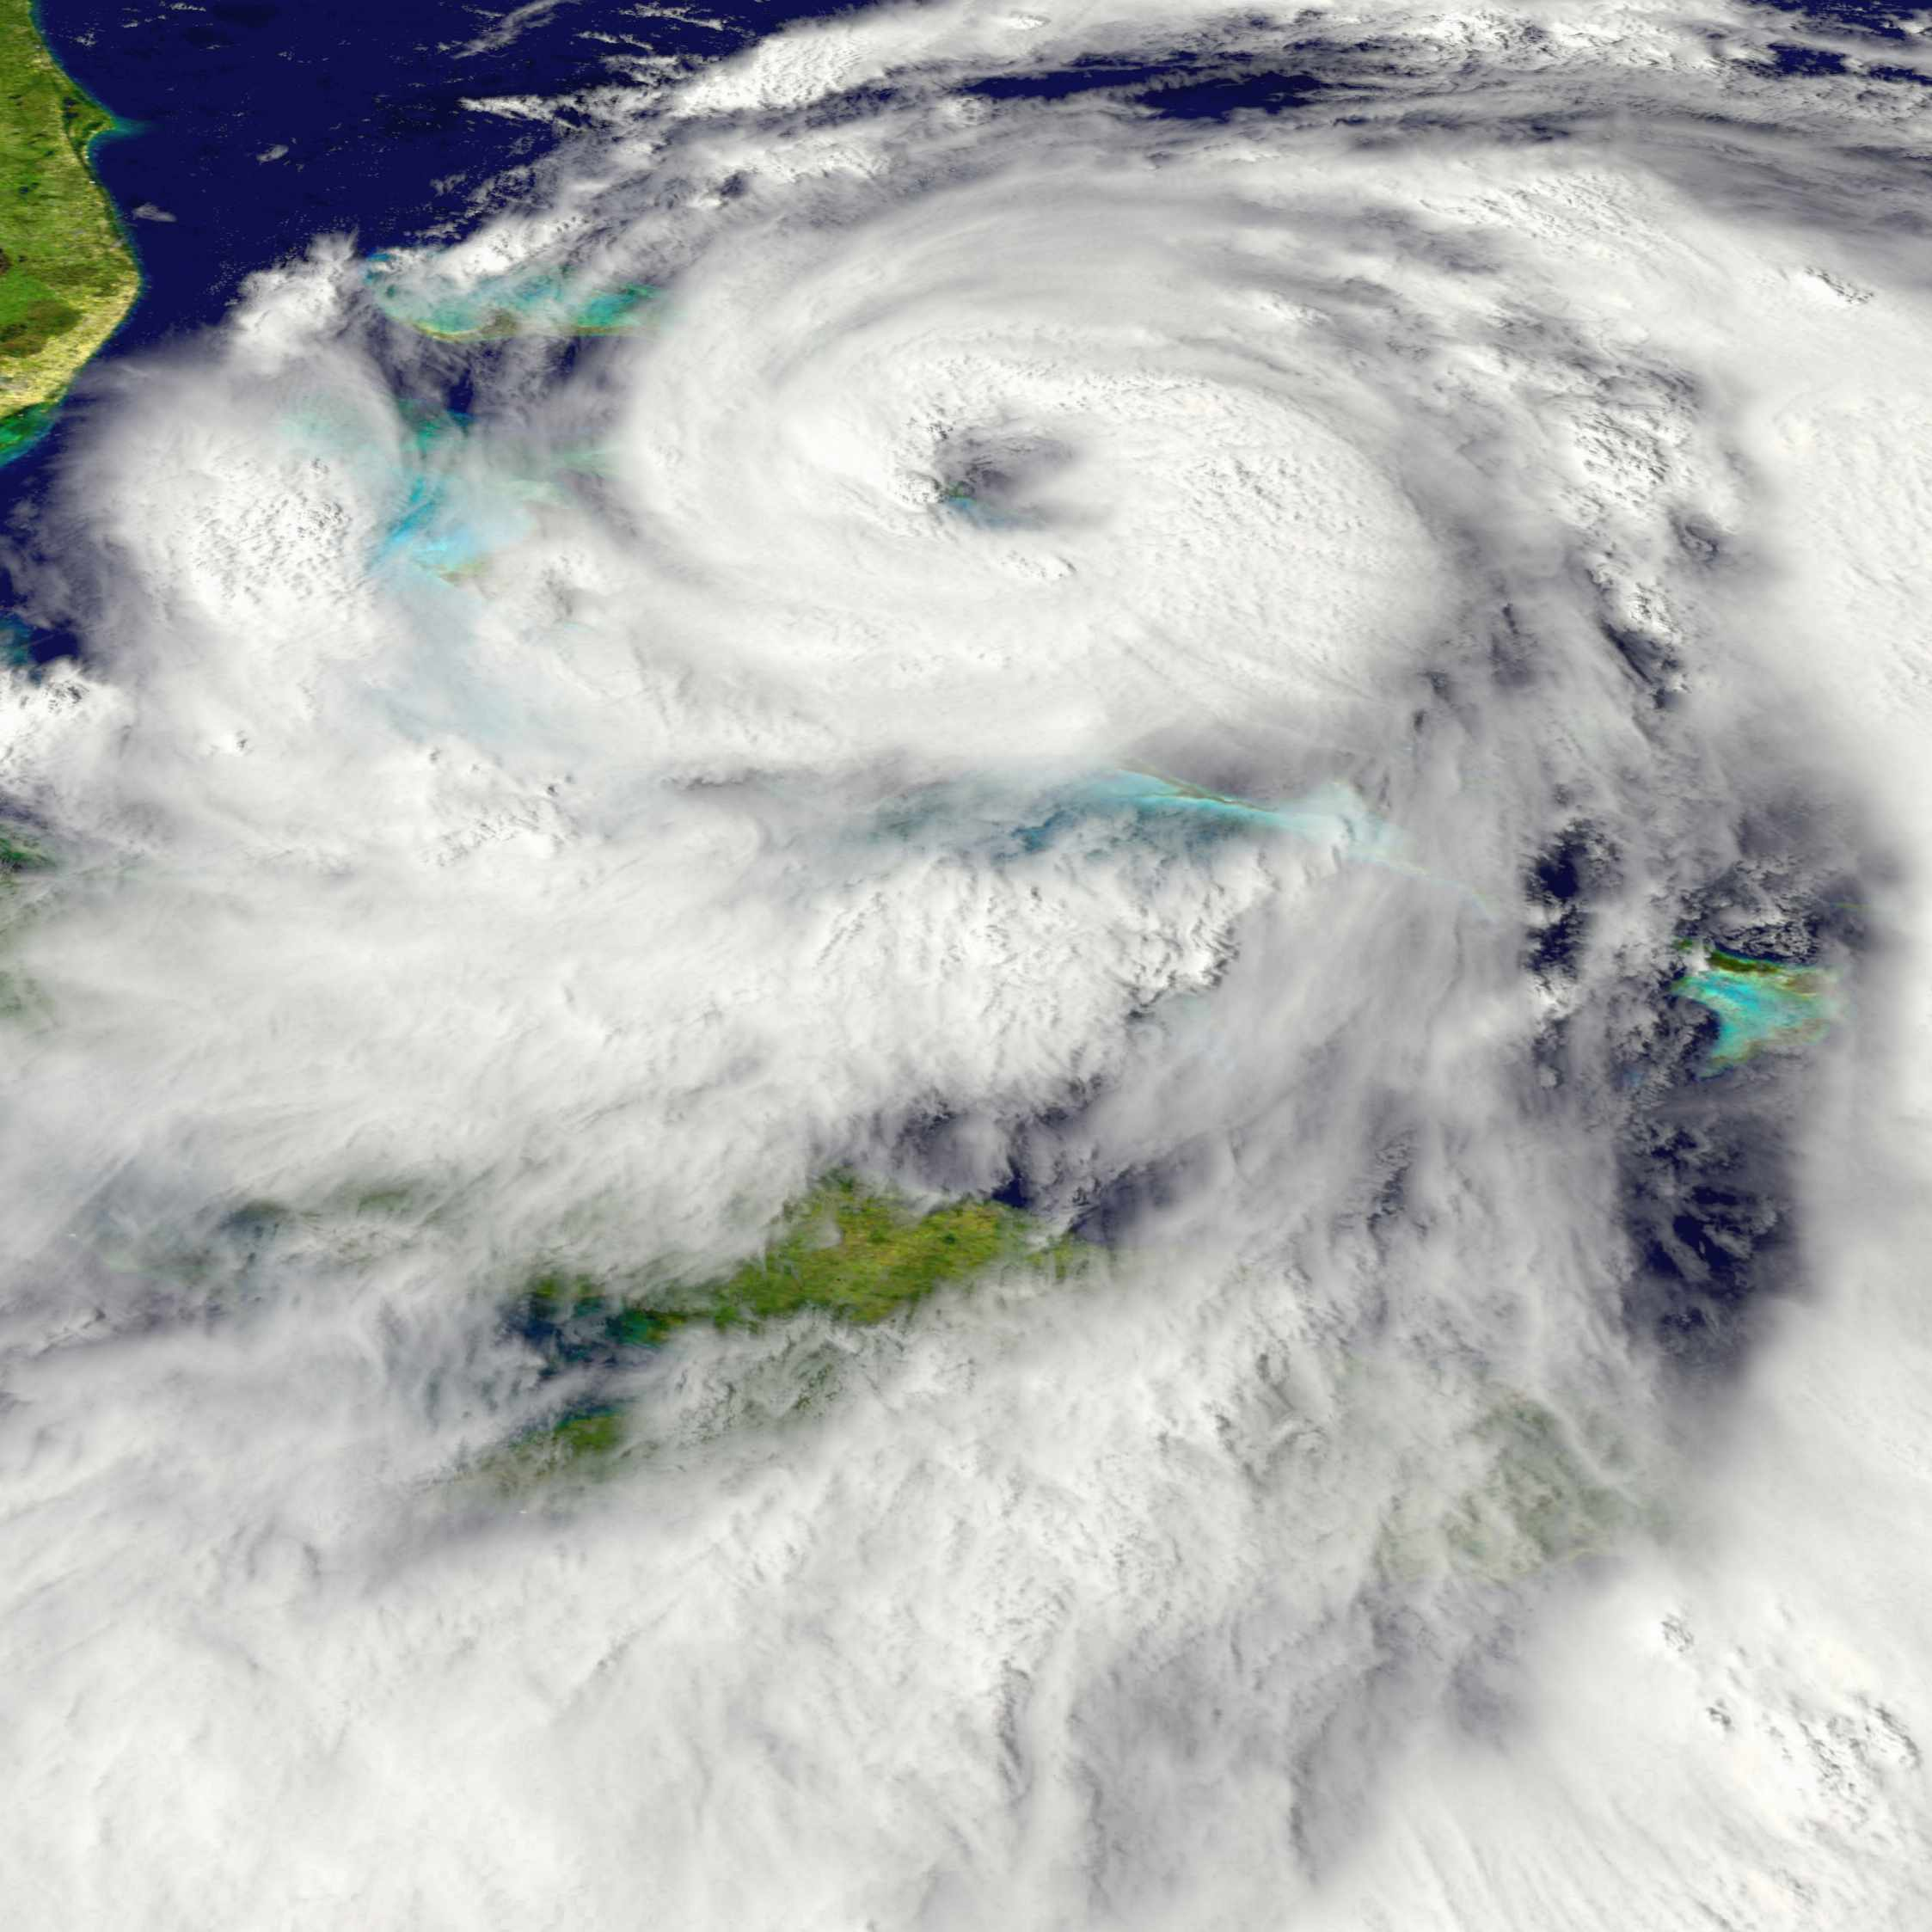 large hurricane storm in the Atlantic Ocean off the coast of Florida